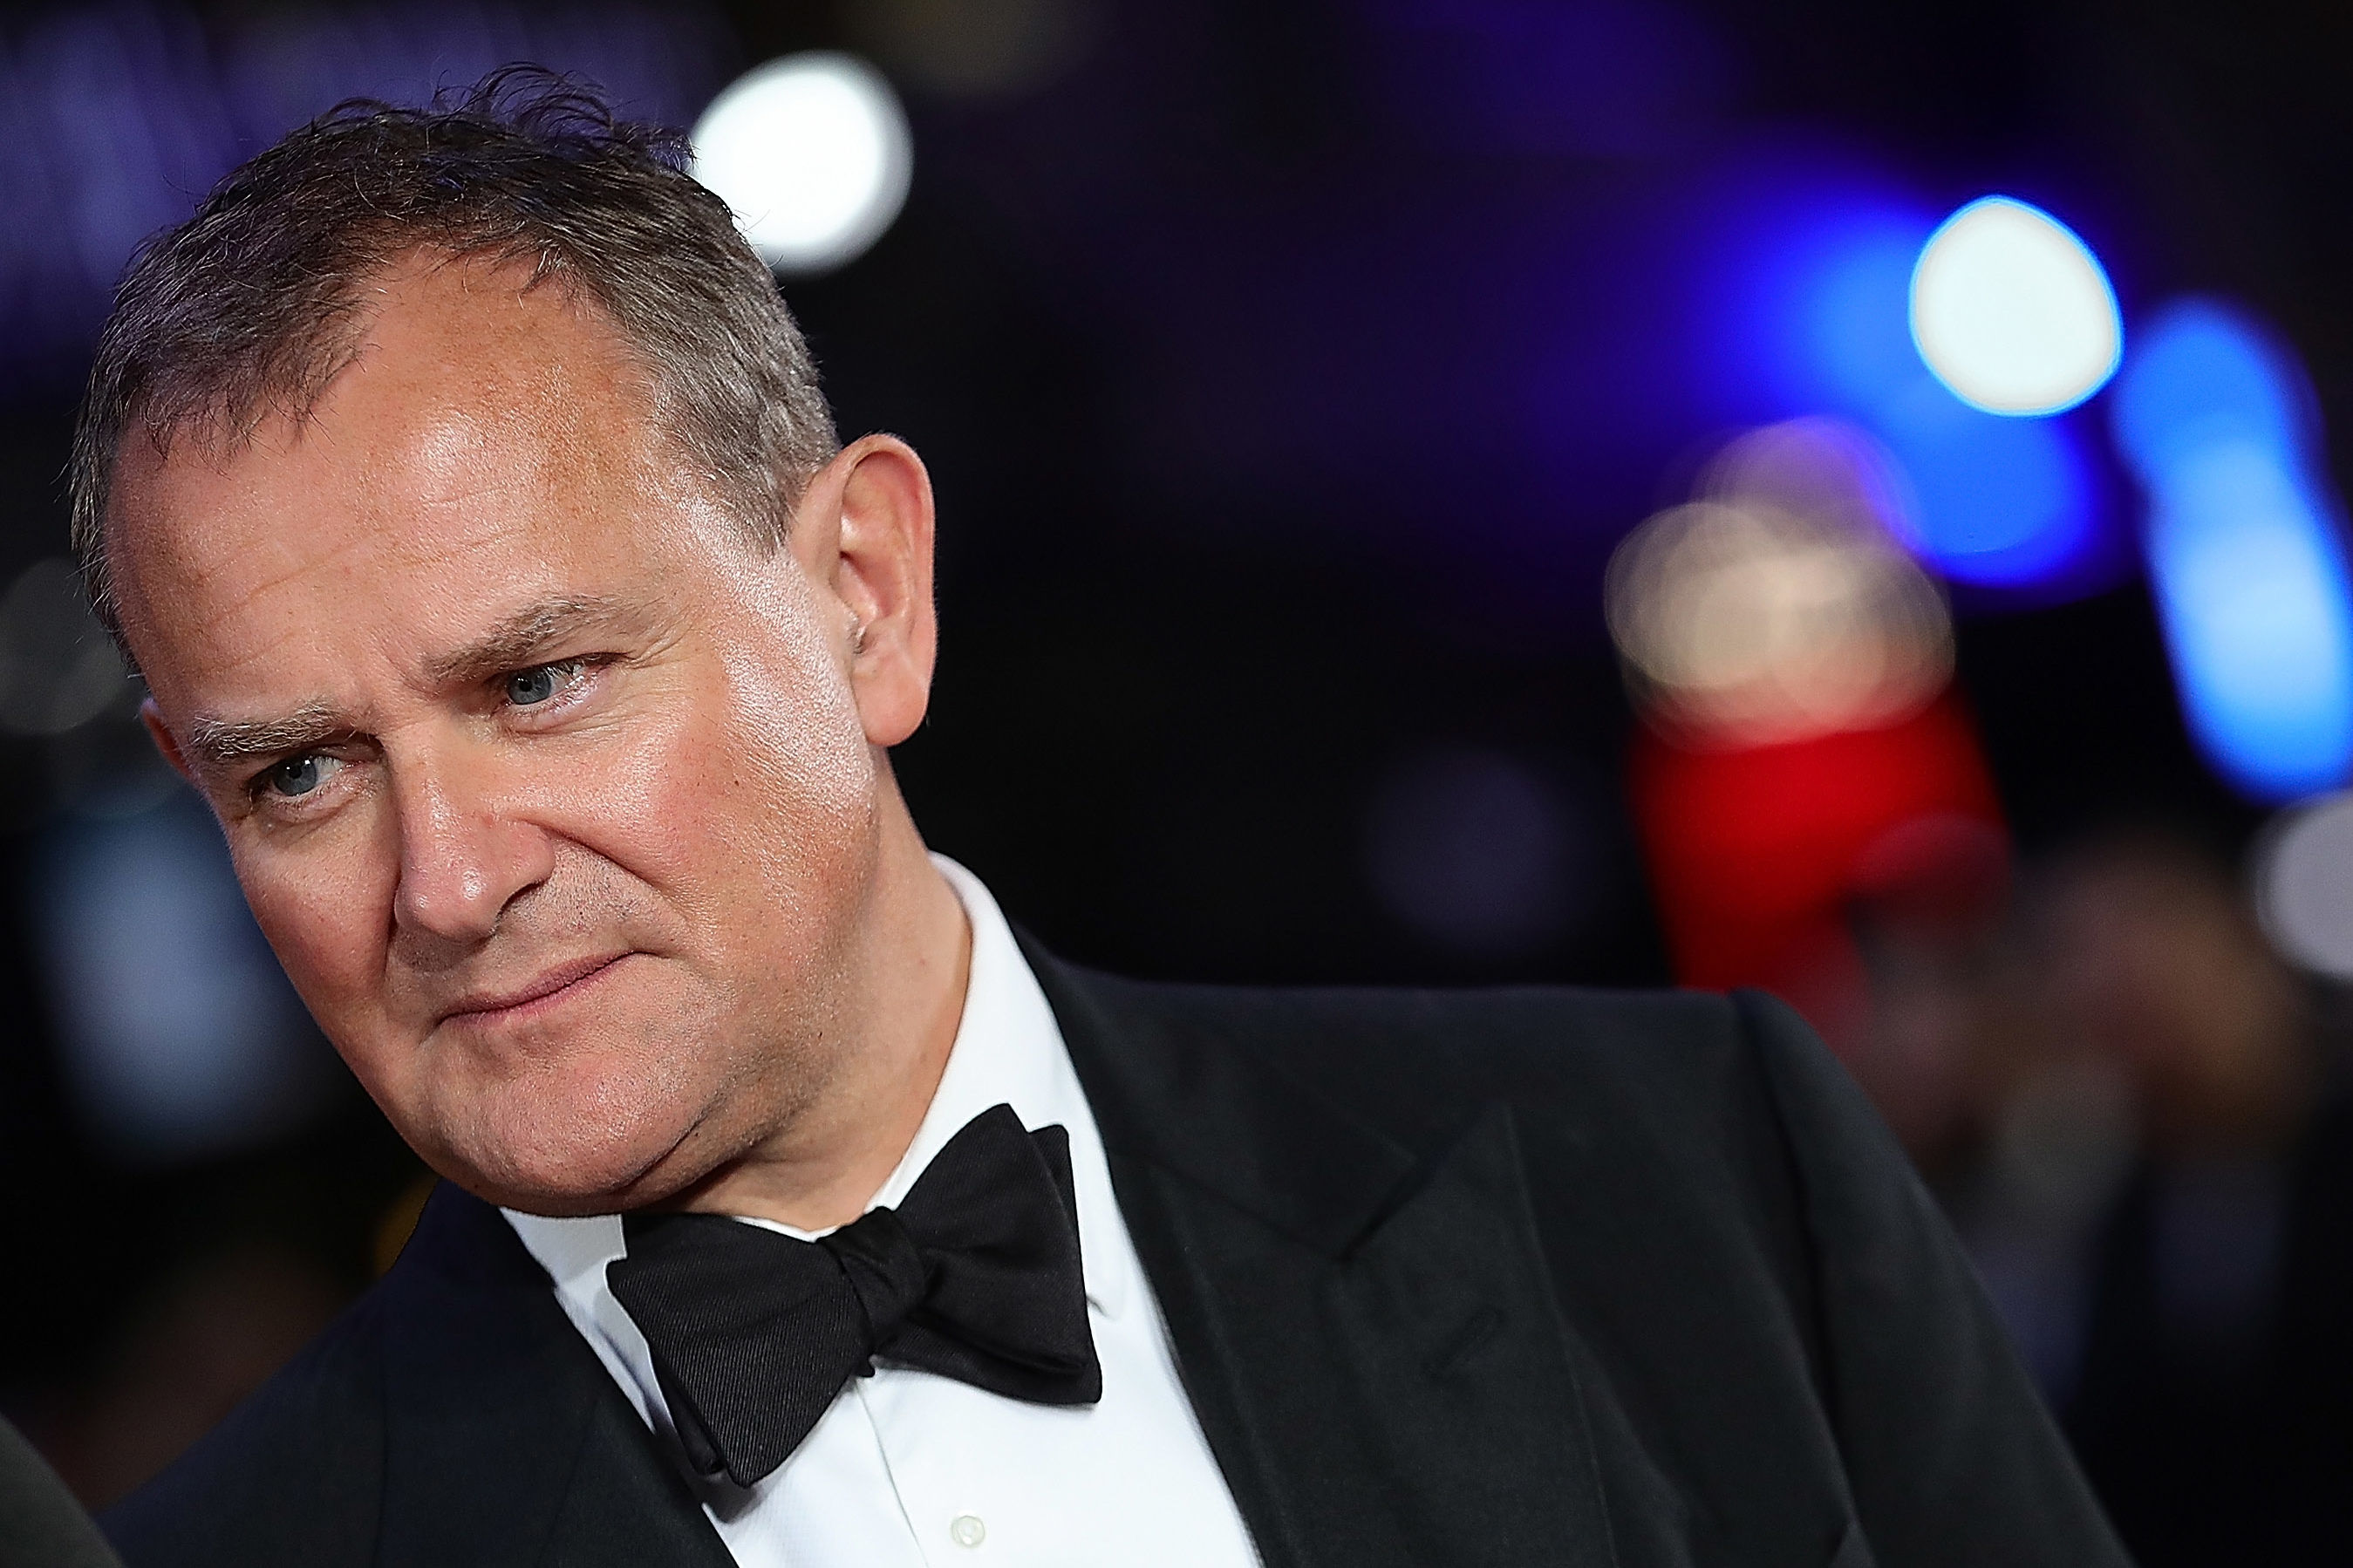 <i>Downton Abbey</i>'s Hugh Bonneville To Star in Netflix Live-Action Holiday Musical